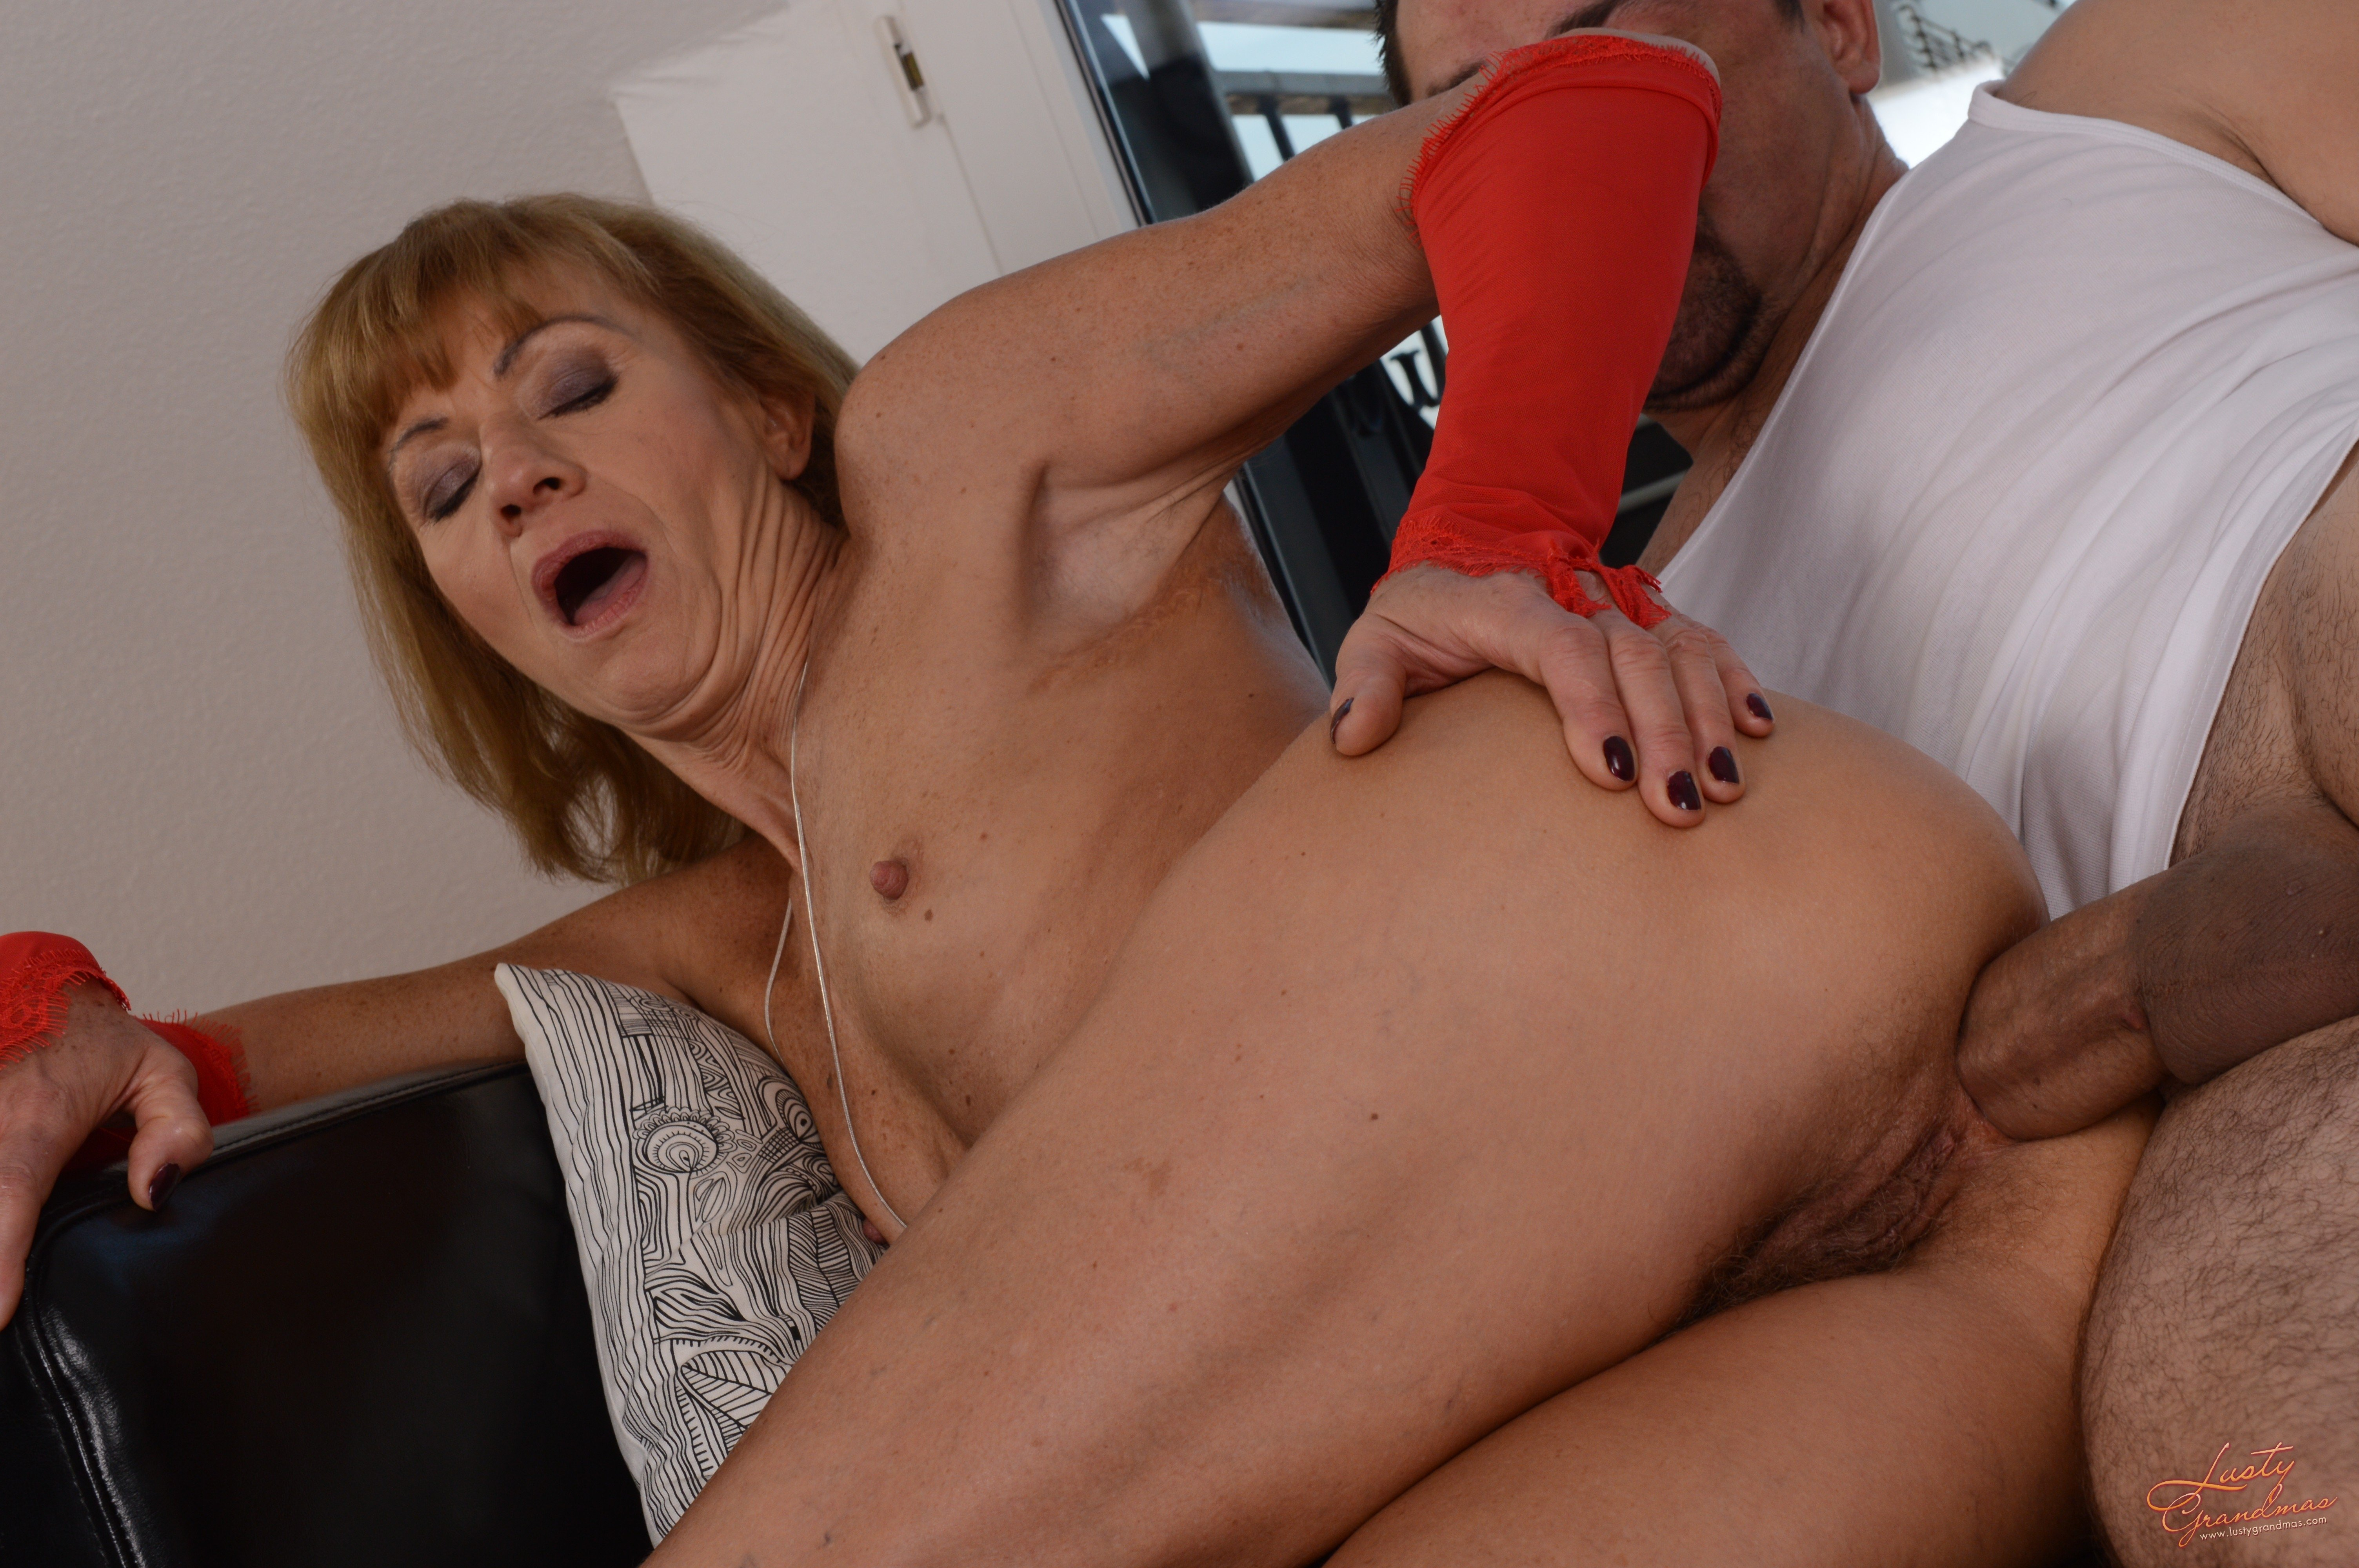 Old woman young man anal